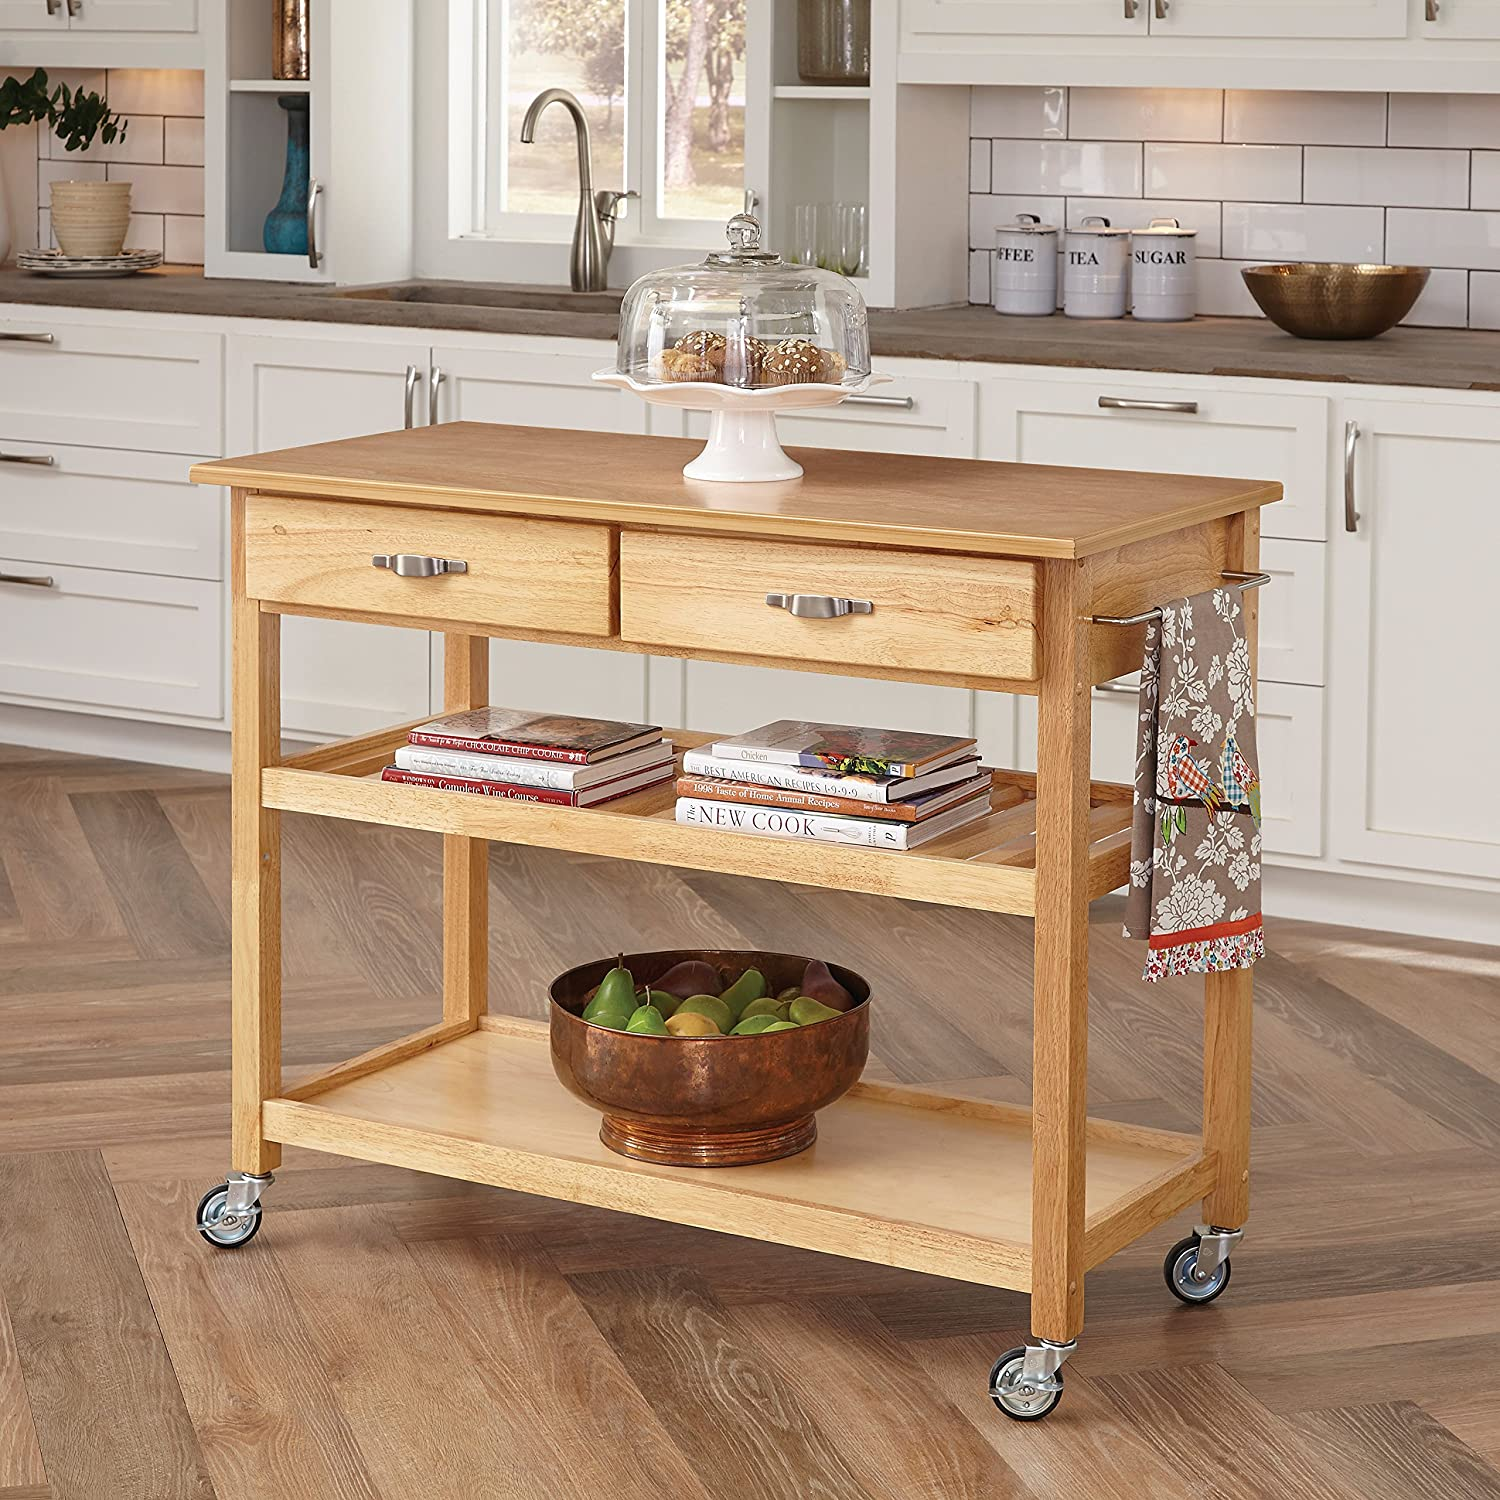 Amazon Com Home Styles Solid Wood Top Kitchen Cart Natural Finish Kitchen Islands Carts